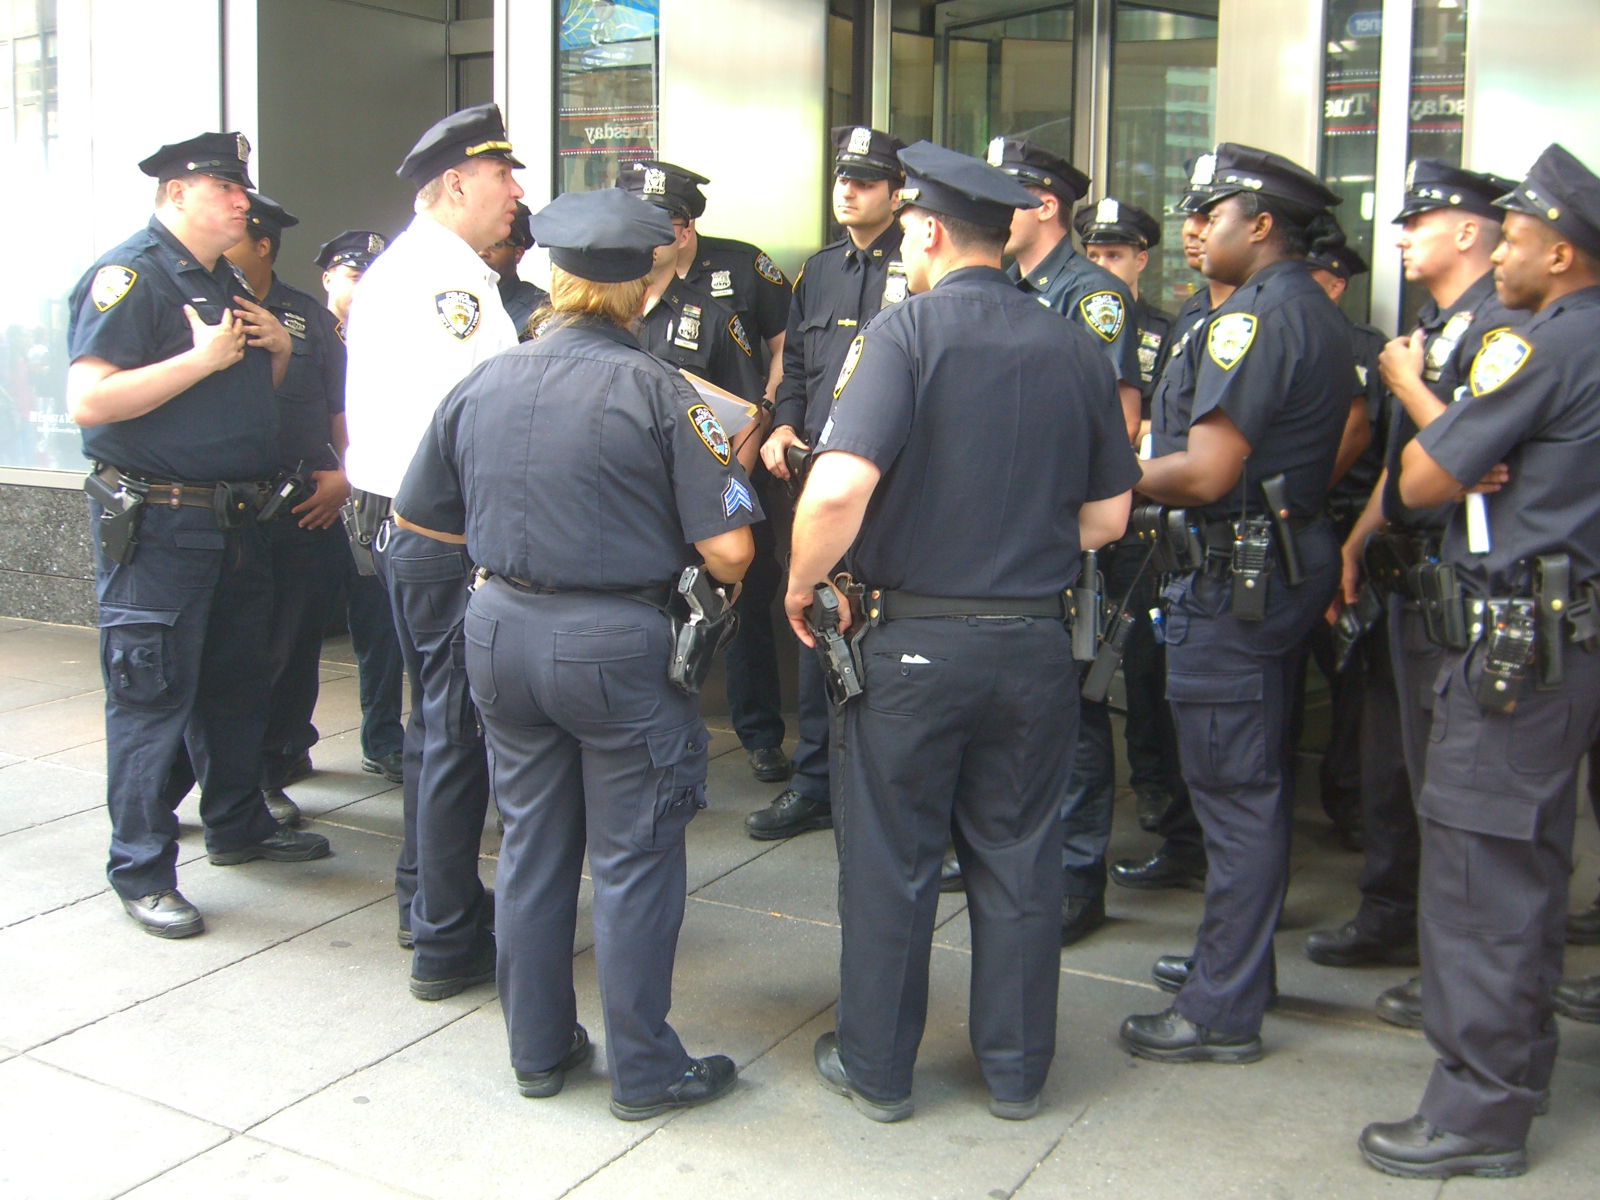 New York City Police officers being debriefed by their lieutenant (in the white shirt) in Times Square, May 29, 2010.